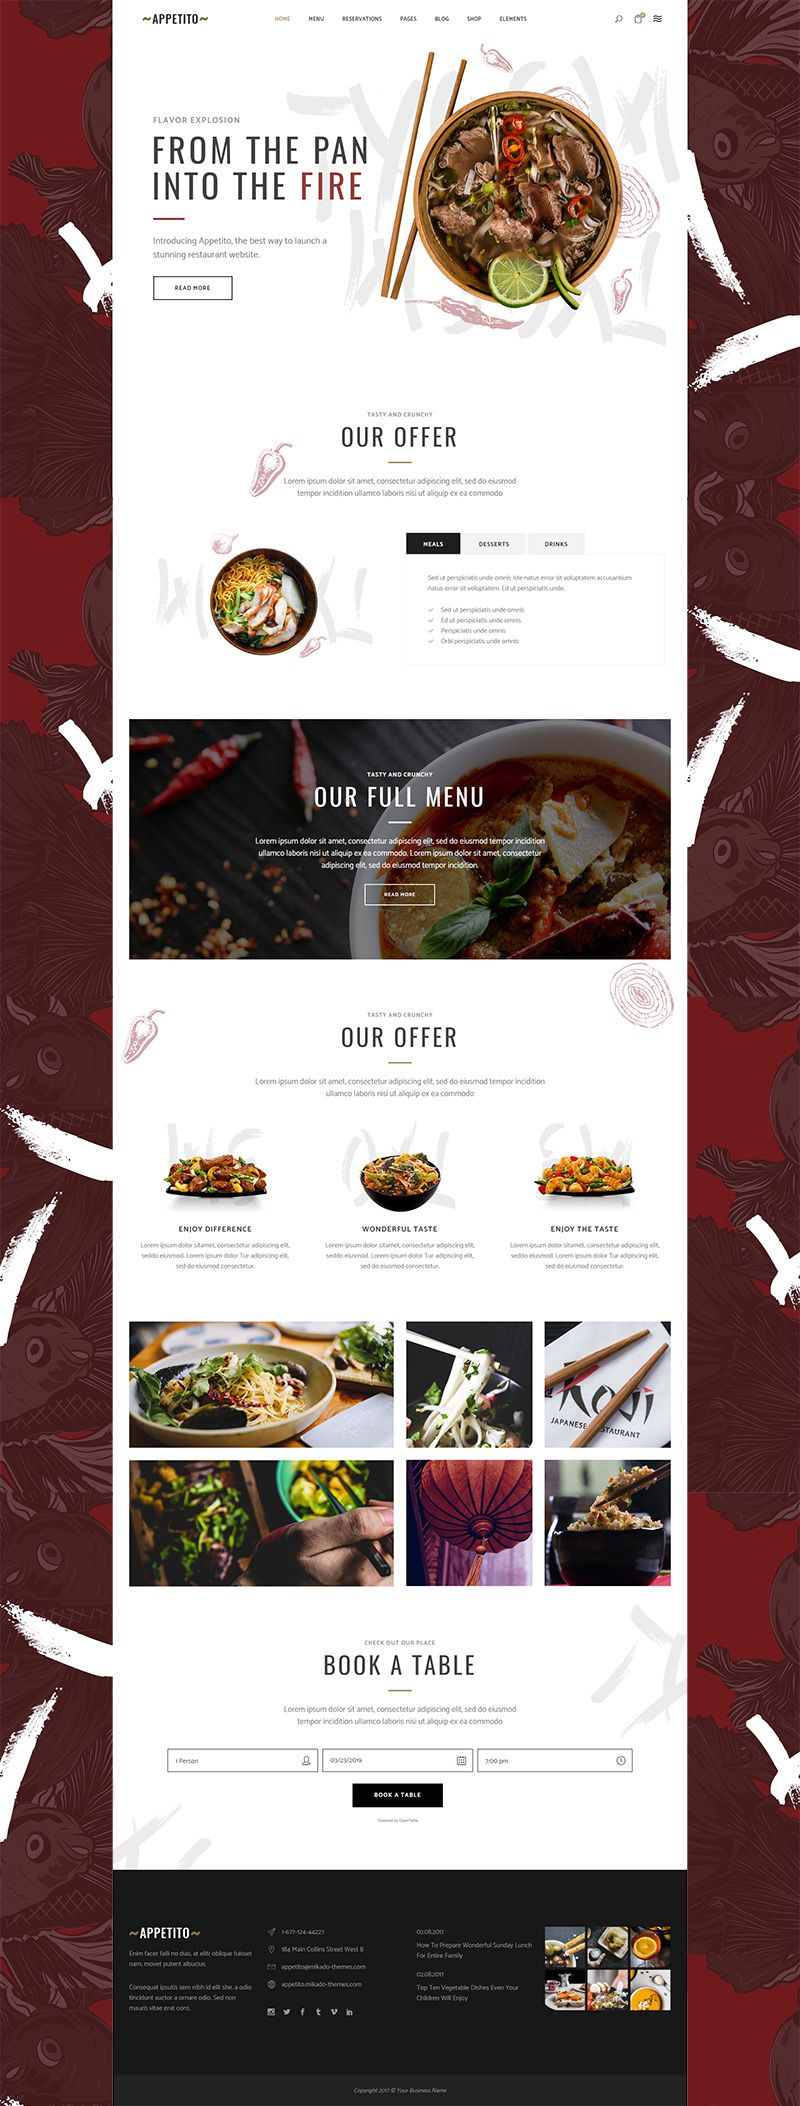 Asian Food Home In 2020 Restaurant Website Design Restaurant Website Design Inspiration Food Website Design